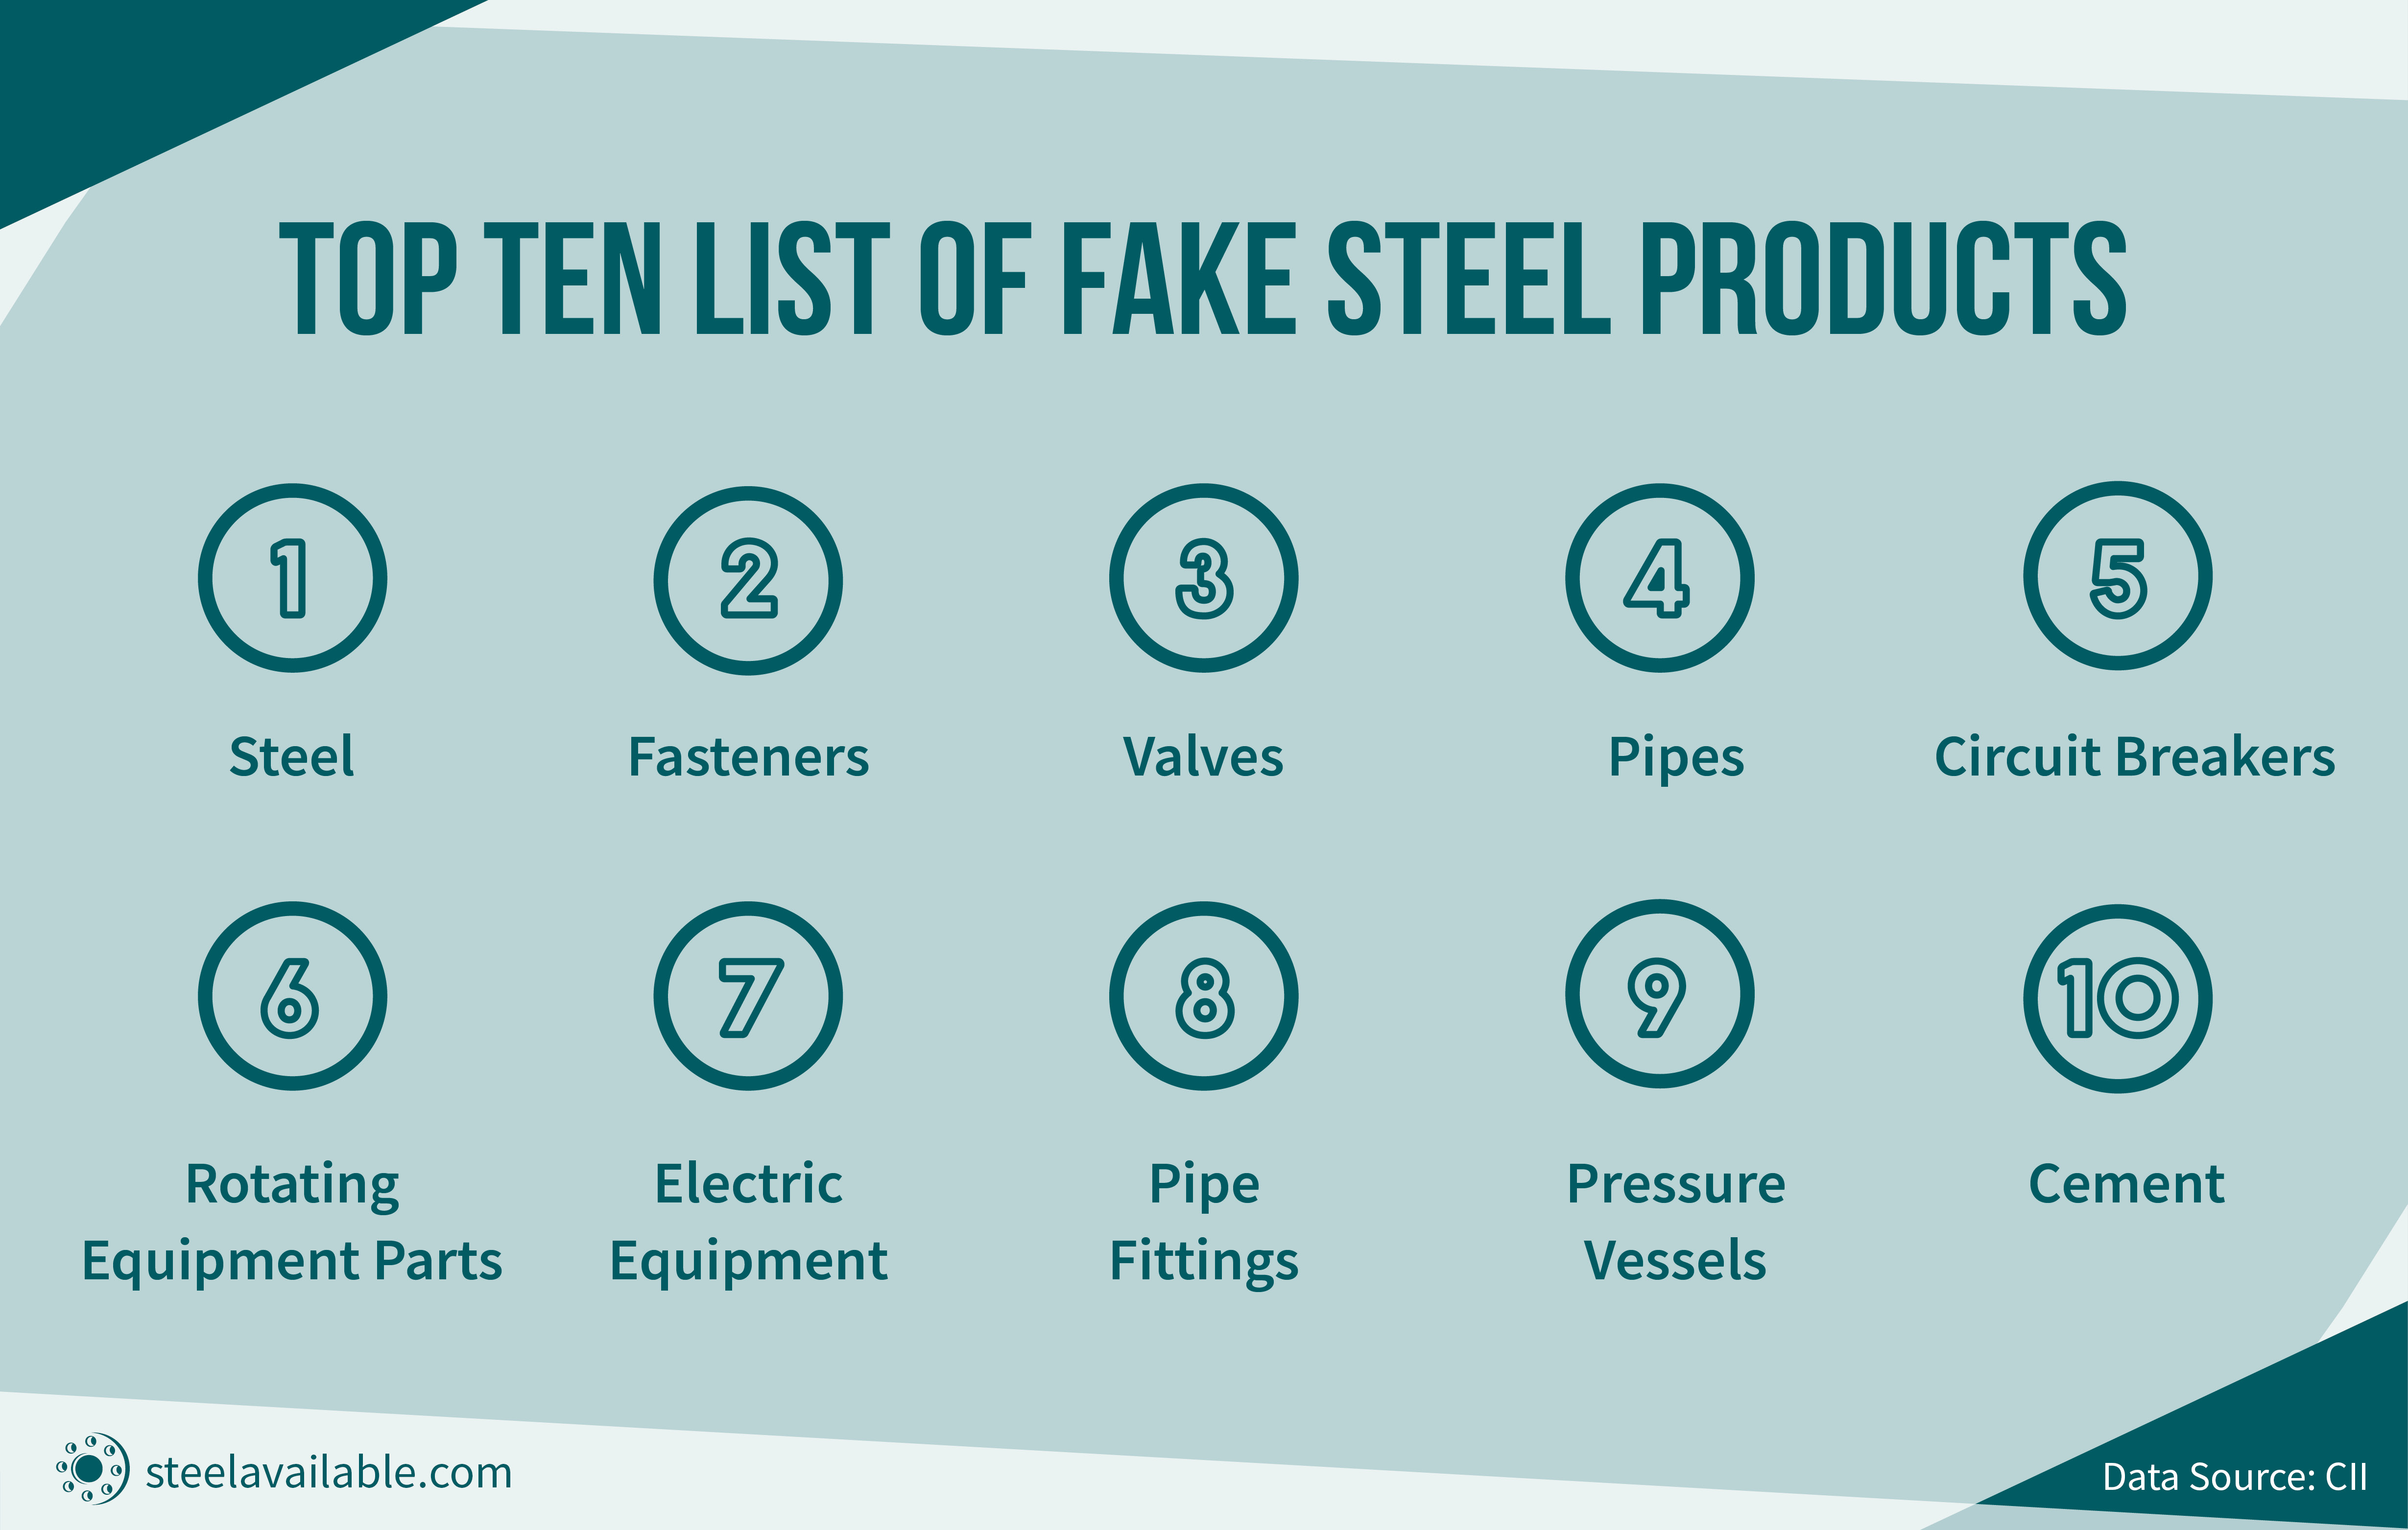 Top Ten List Of Fake Steel Products